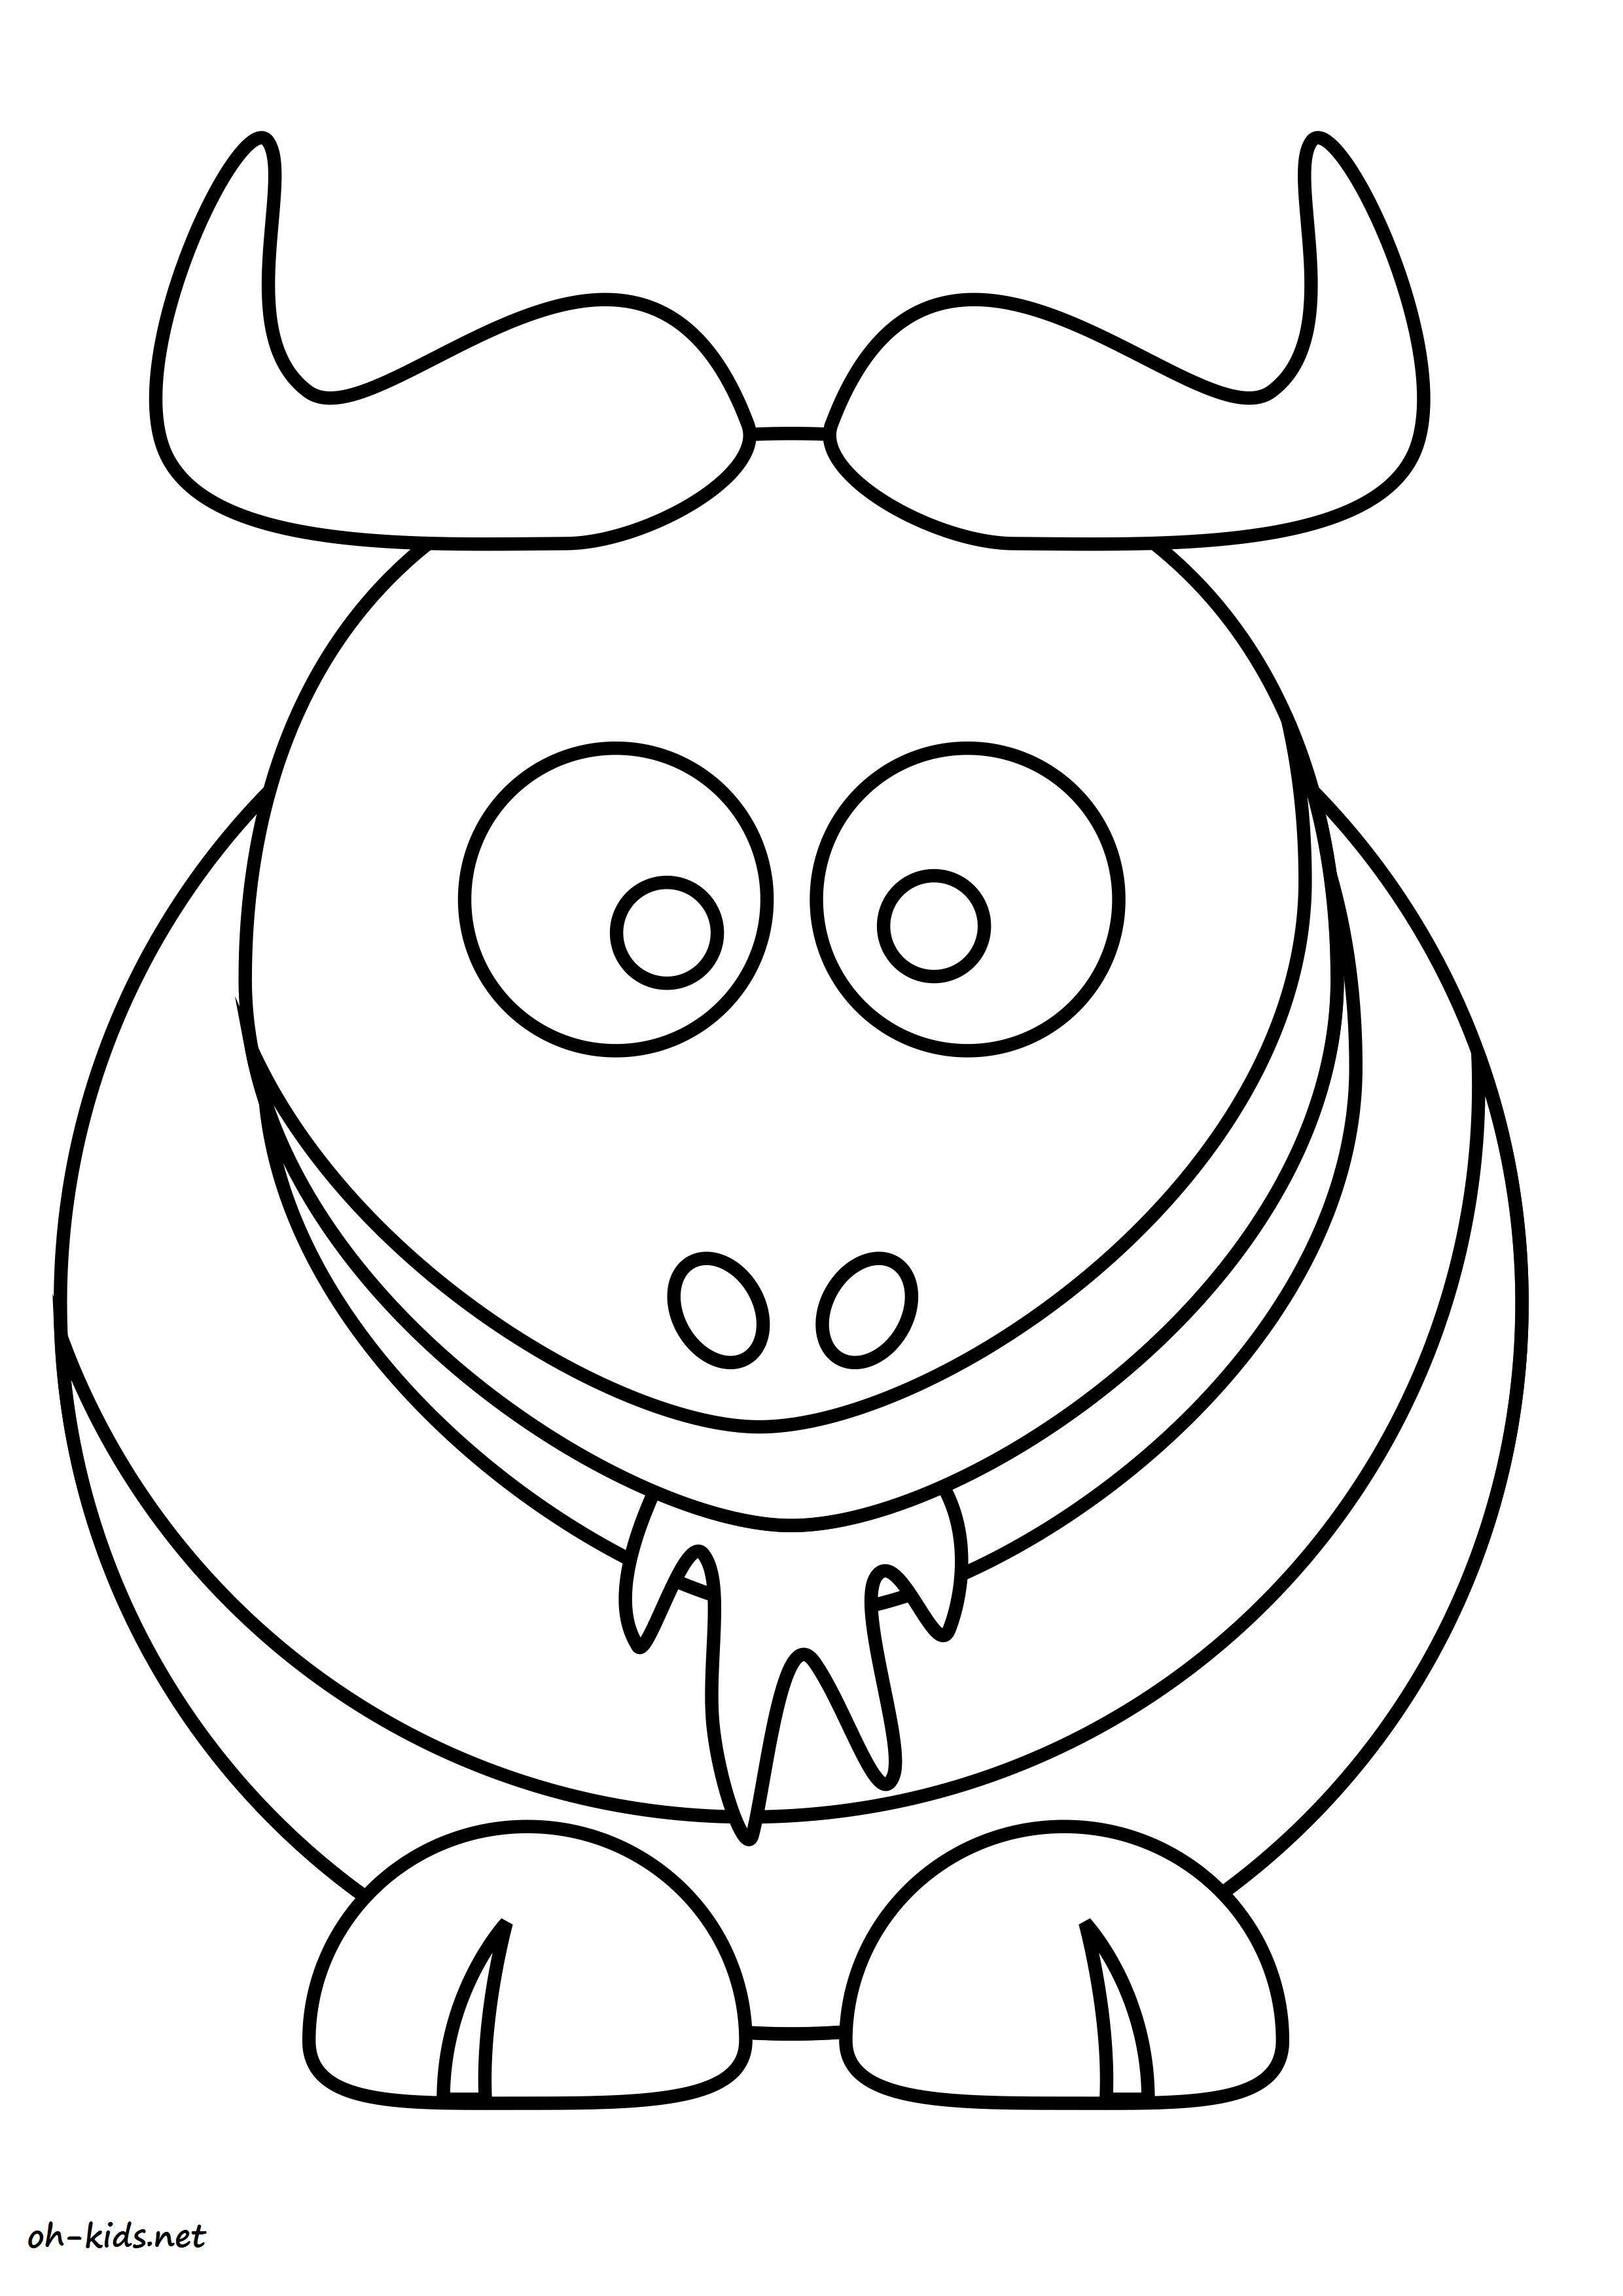 Coloriage bison page 2 of 2 oh kids fr - Bison coloriage ...